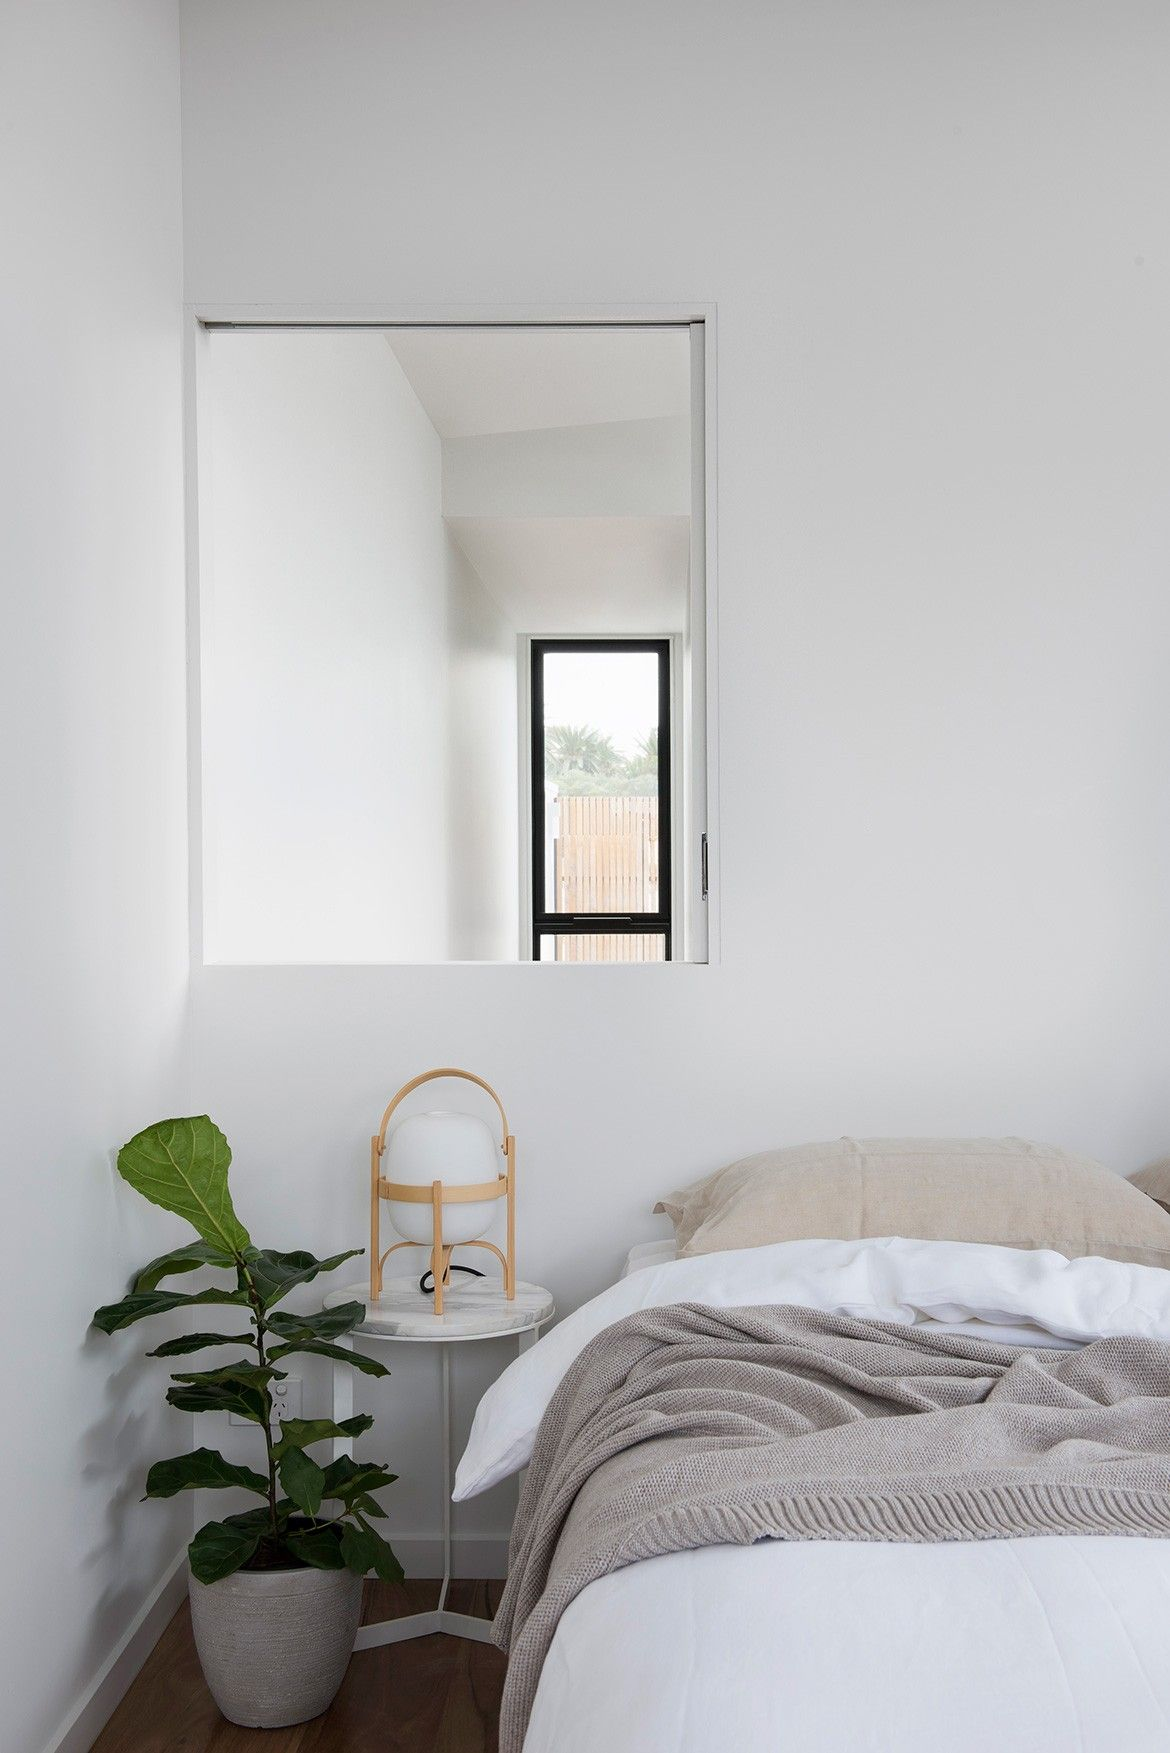 Winter Architecture Photography by Nicole England bedroom